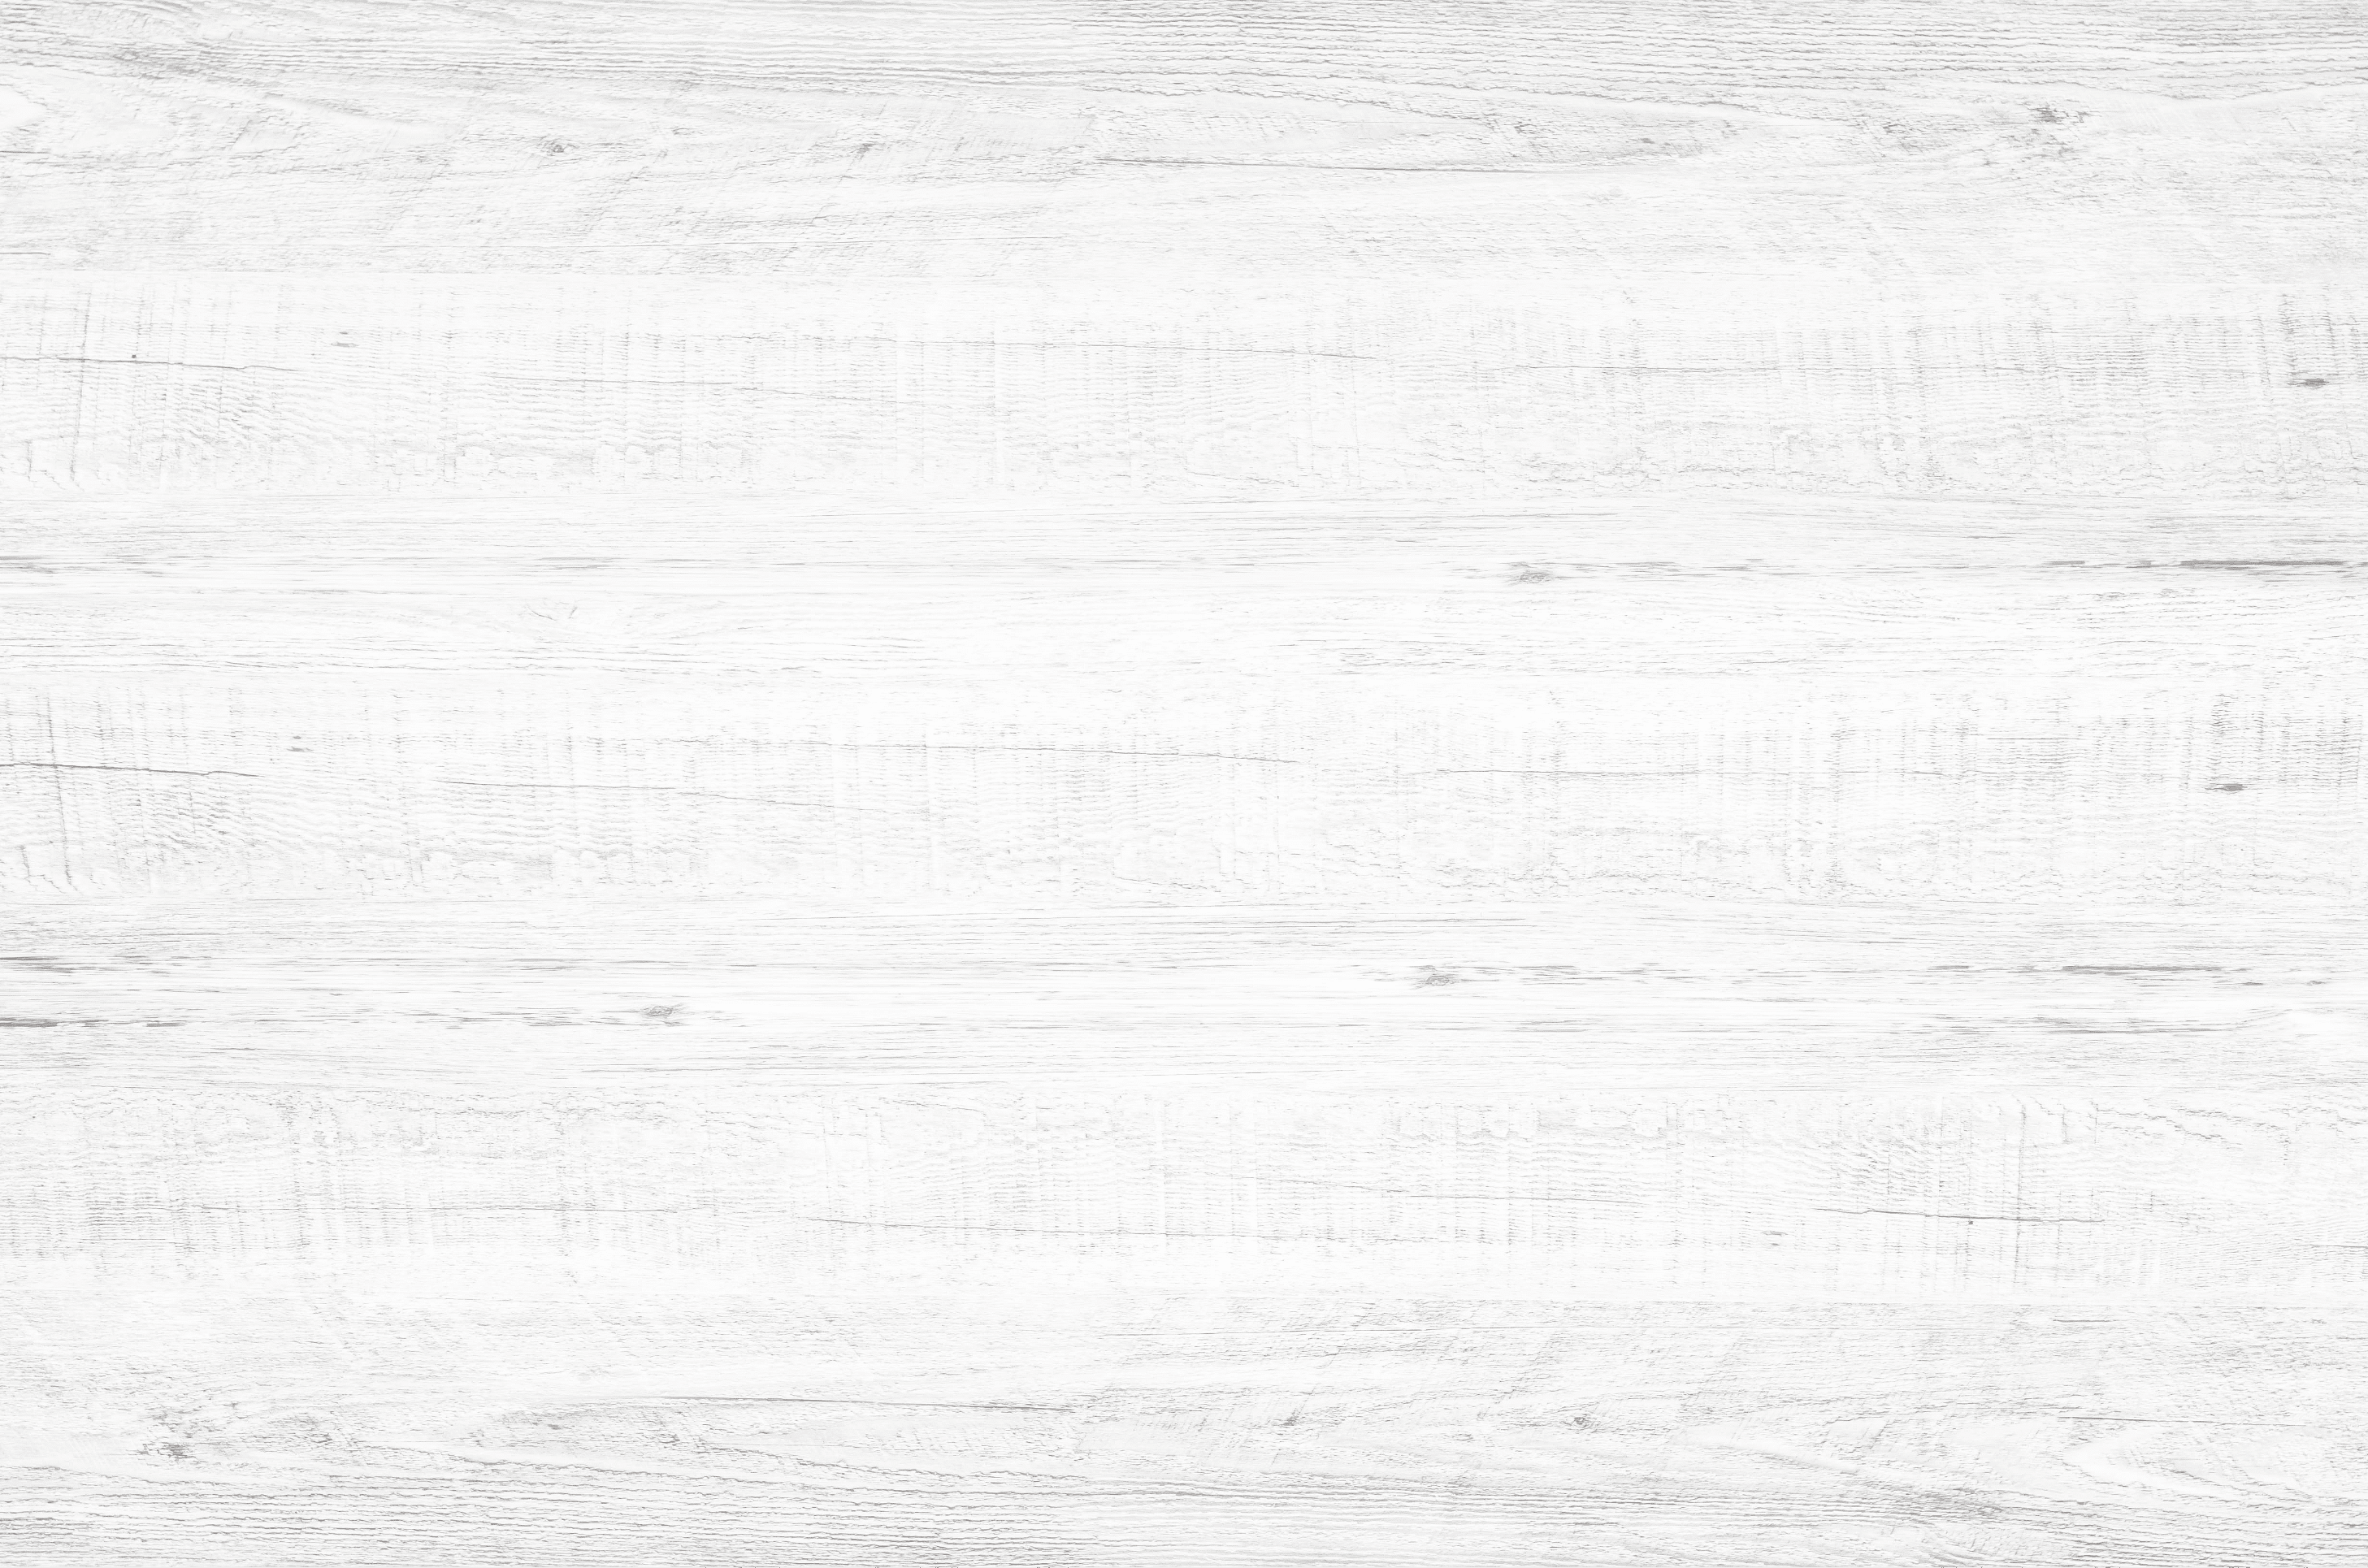 Wood Effect Background